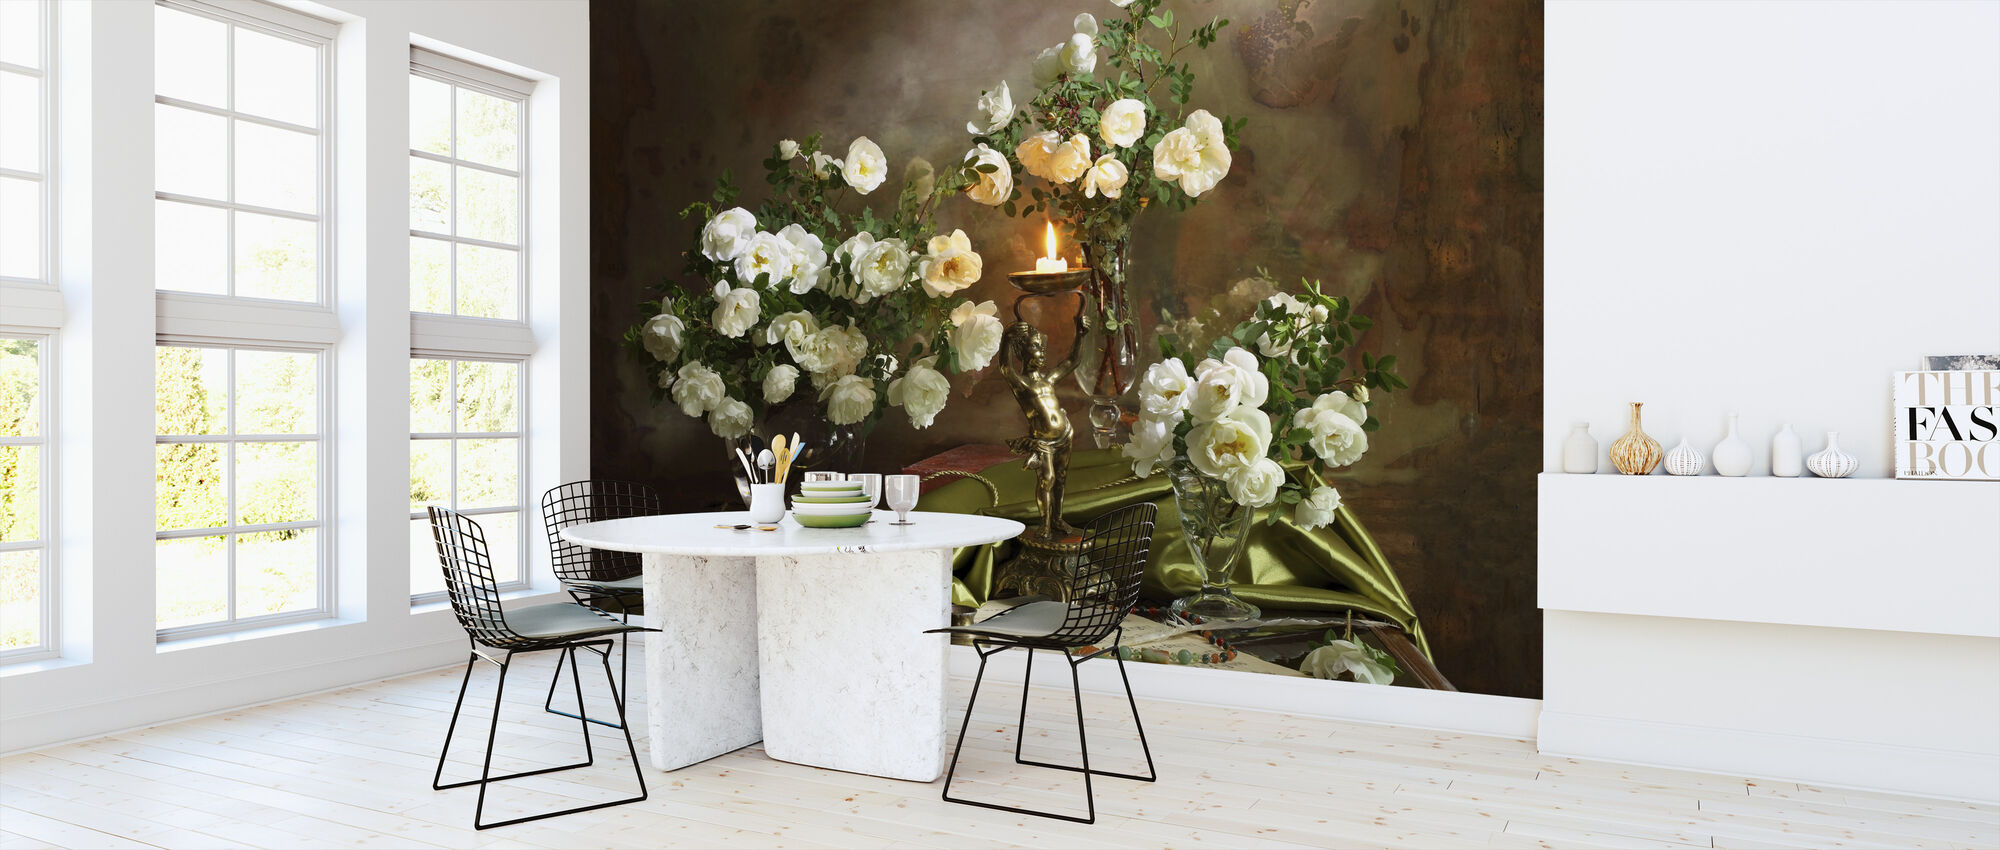 Still Life with Roses and Candle - Wallpaper - Kitchen